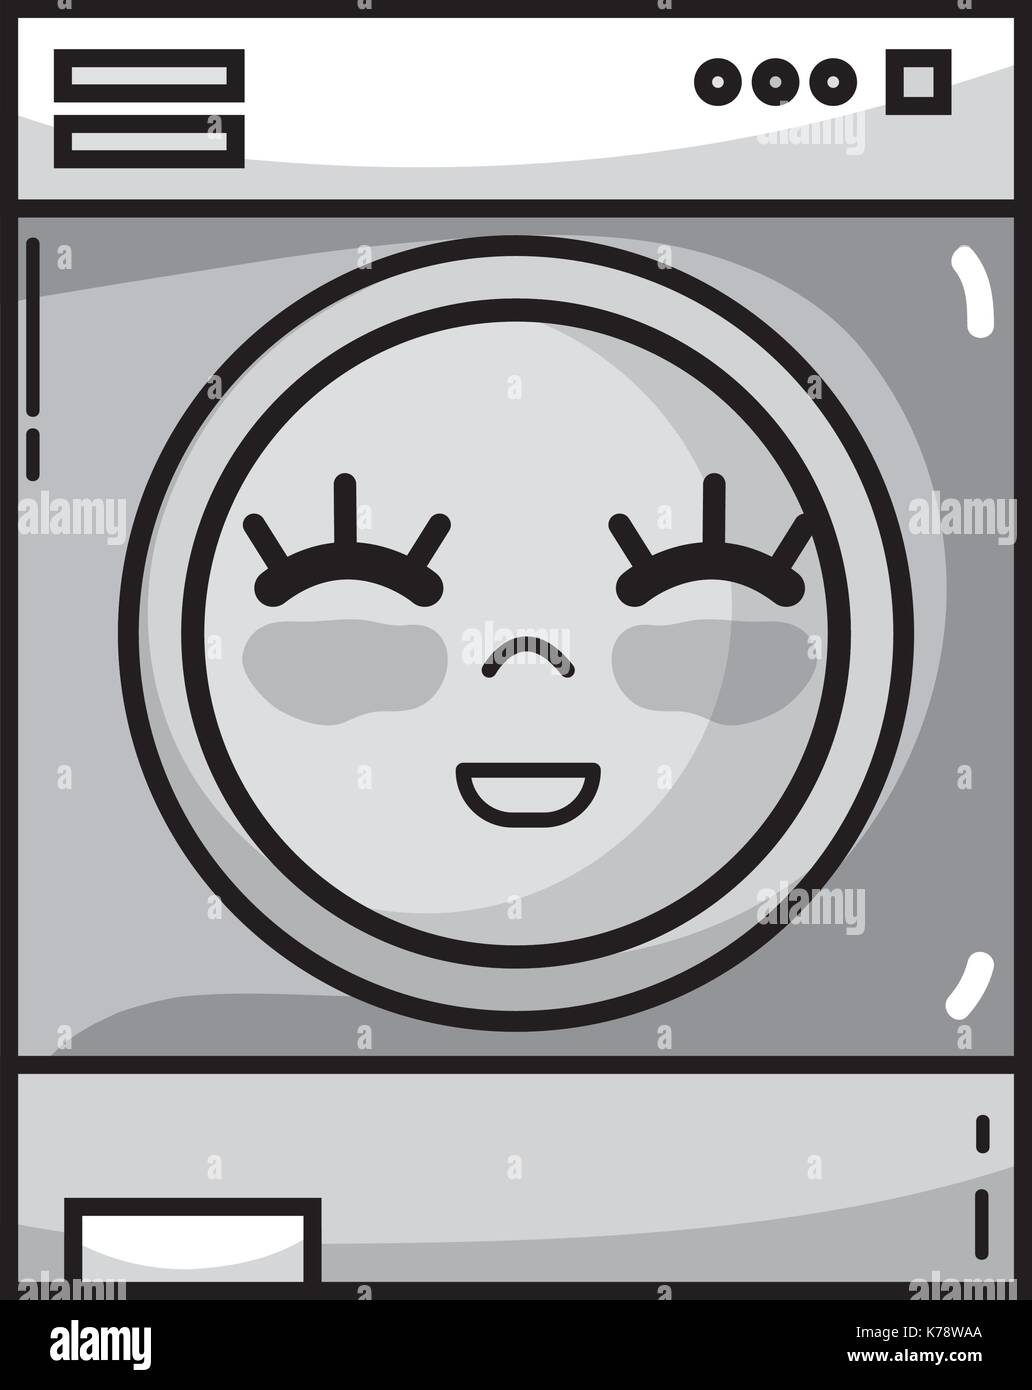 cute washing machine clipart. grayscale kawaii cute happy washing machine - stock image clipart